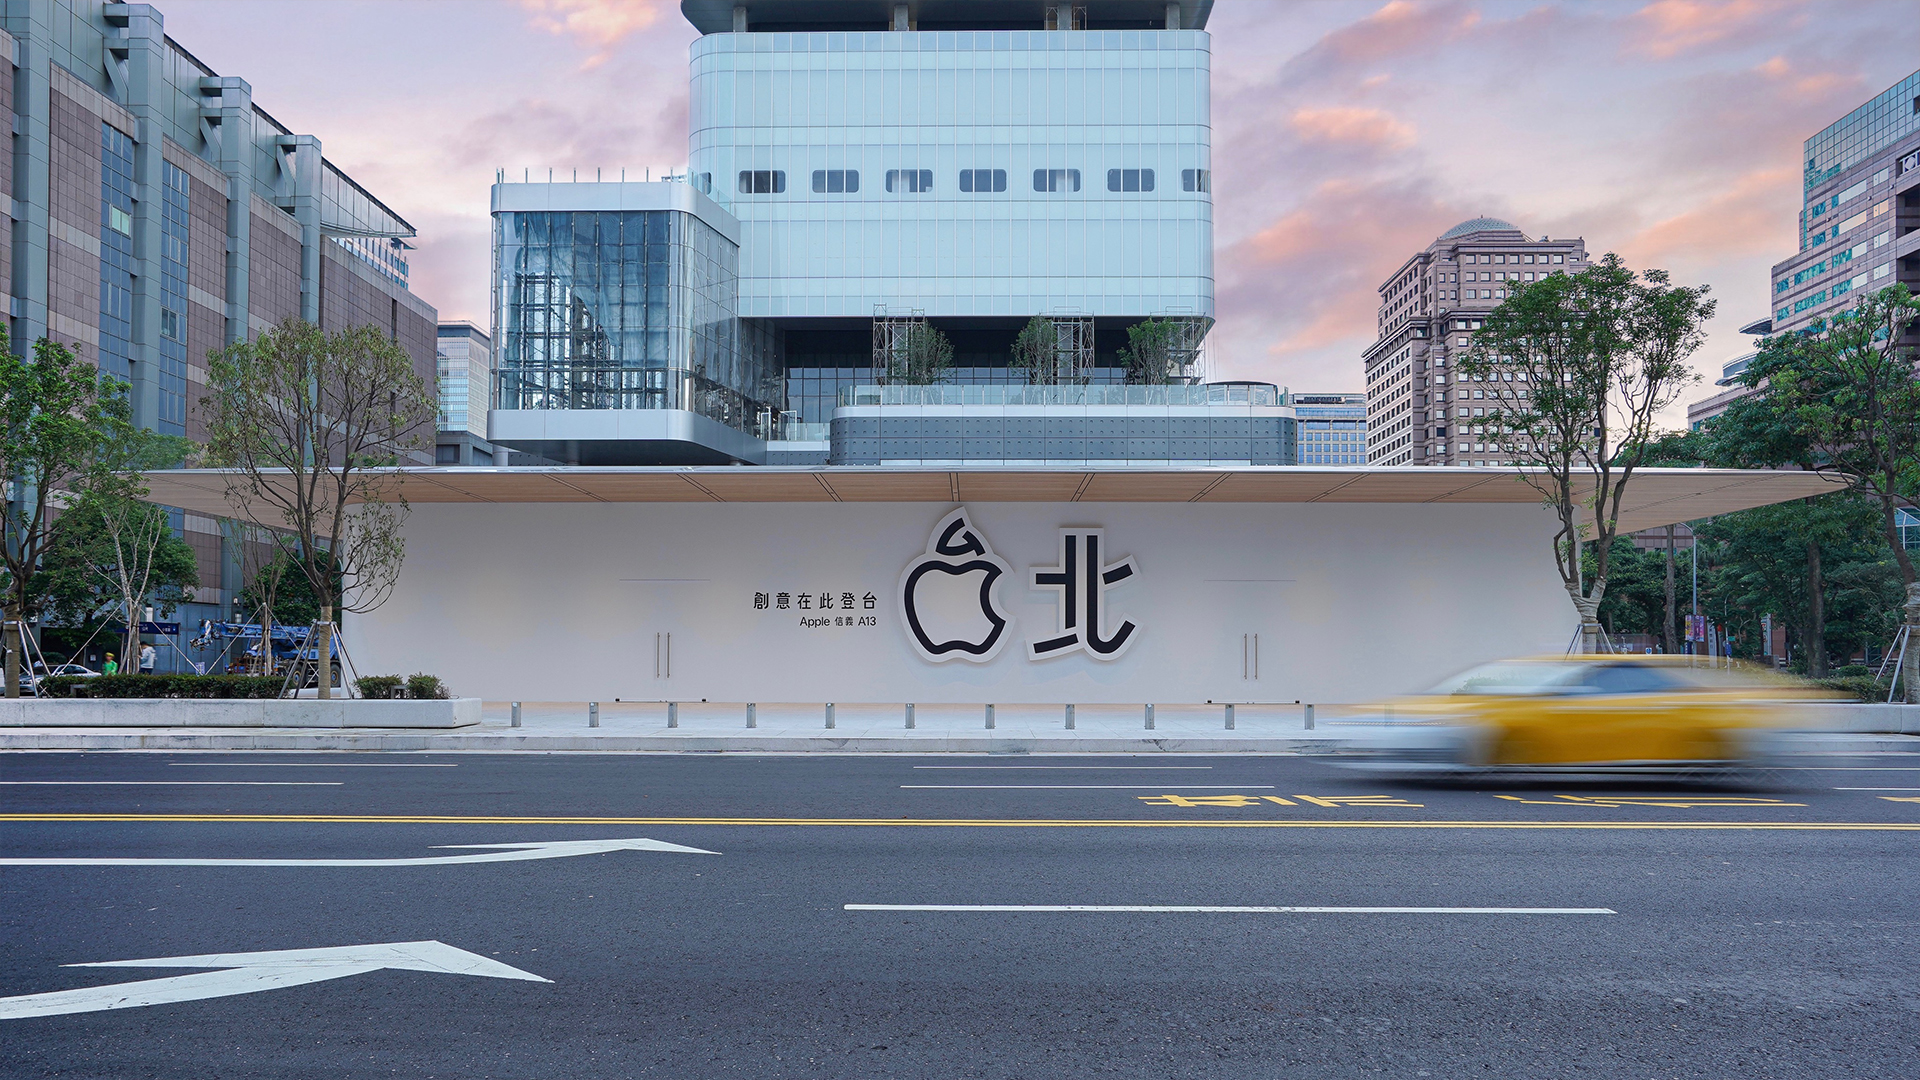 Apple's second store in Taiwan will open soon in the Xinyi District of Taipei